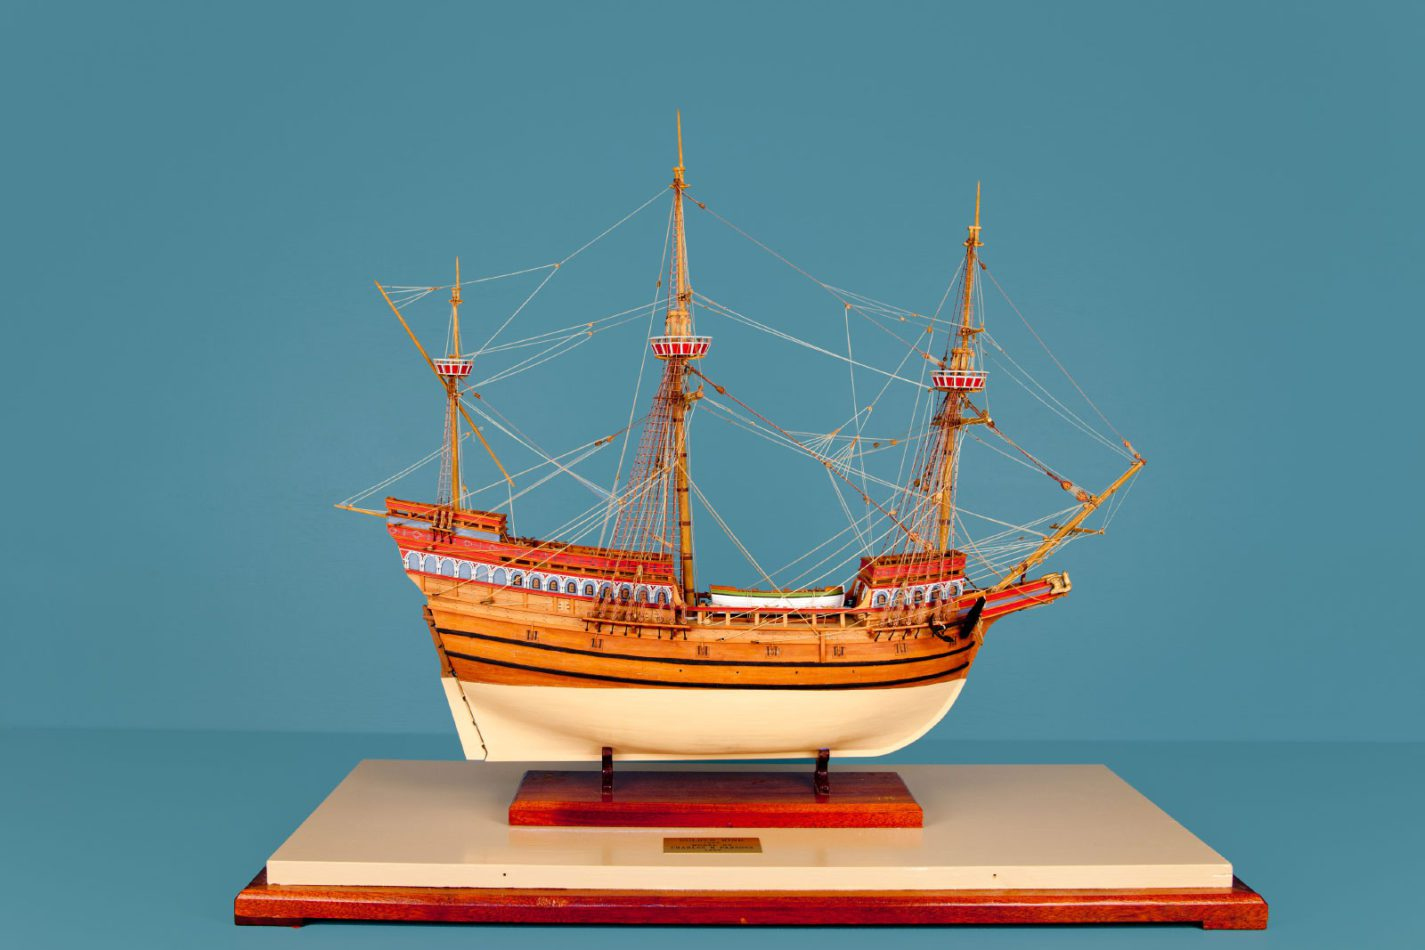 Golden Hind model ship at the Ships of the World exhibit at San Mateo County History Museum